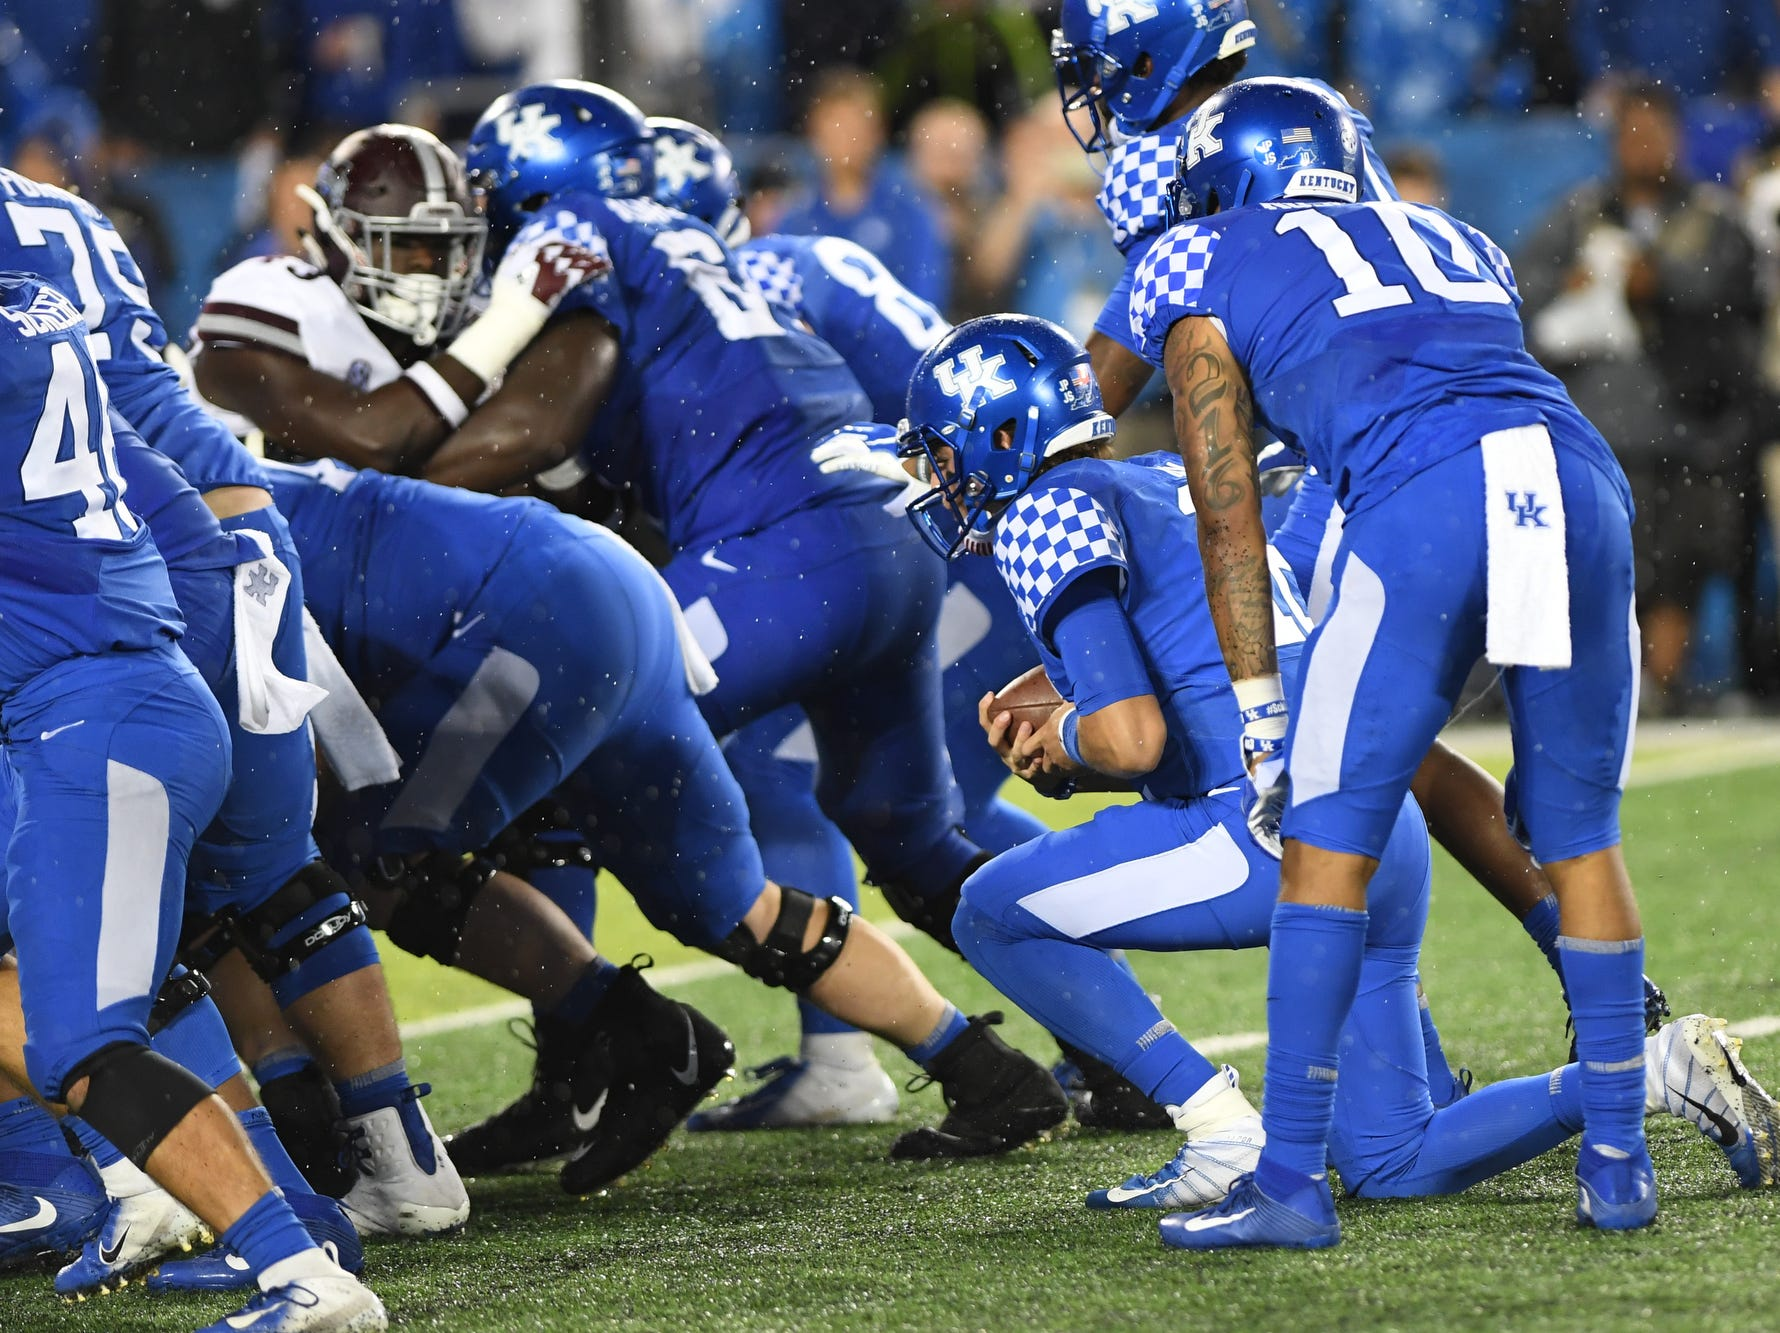 UK QB Gunnar Hoak takes a knee during the University of Kentucky football game against Mississippi State at Kroger Field in Lexington, Kentucky on Saturday, September 22, 2018.